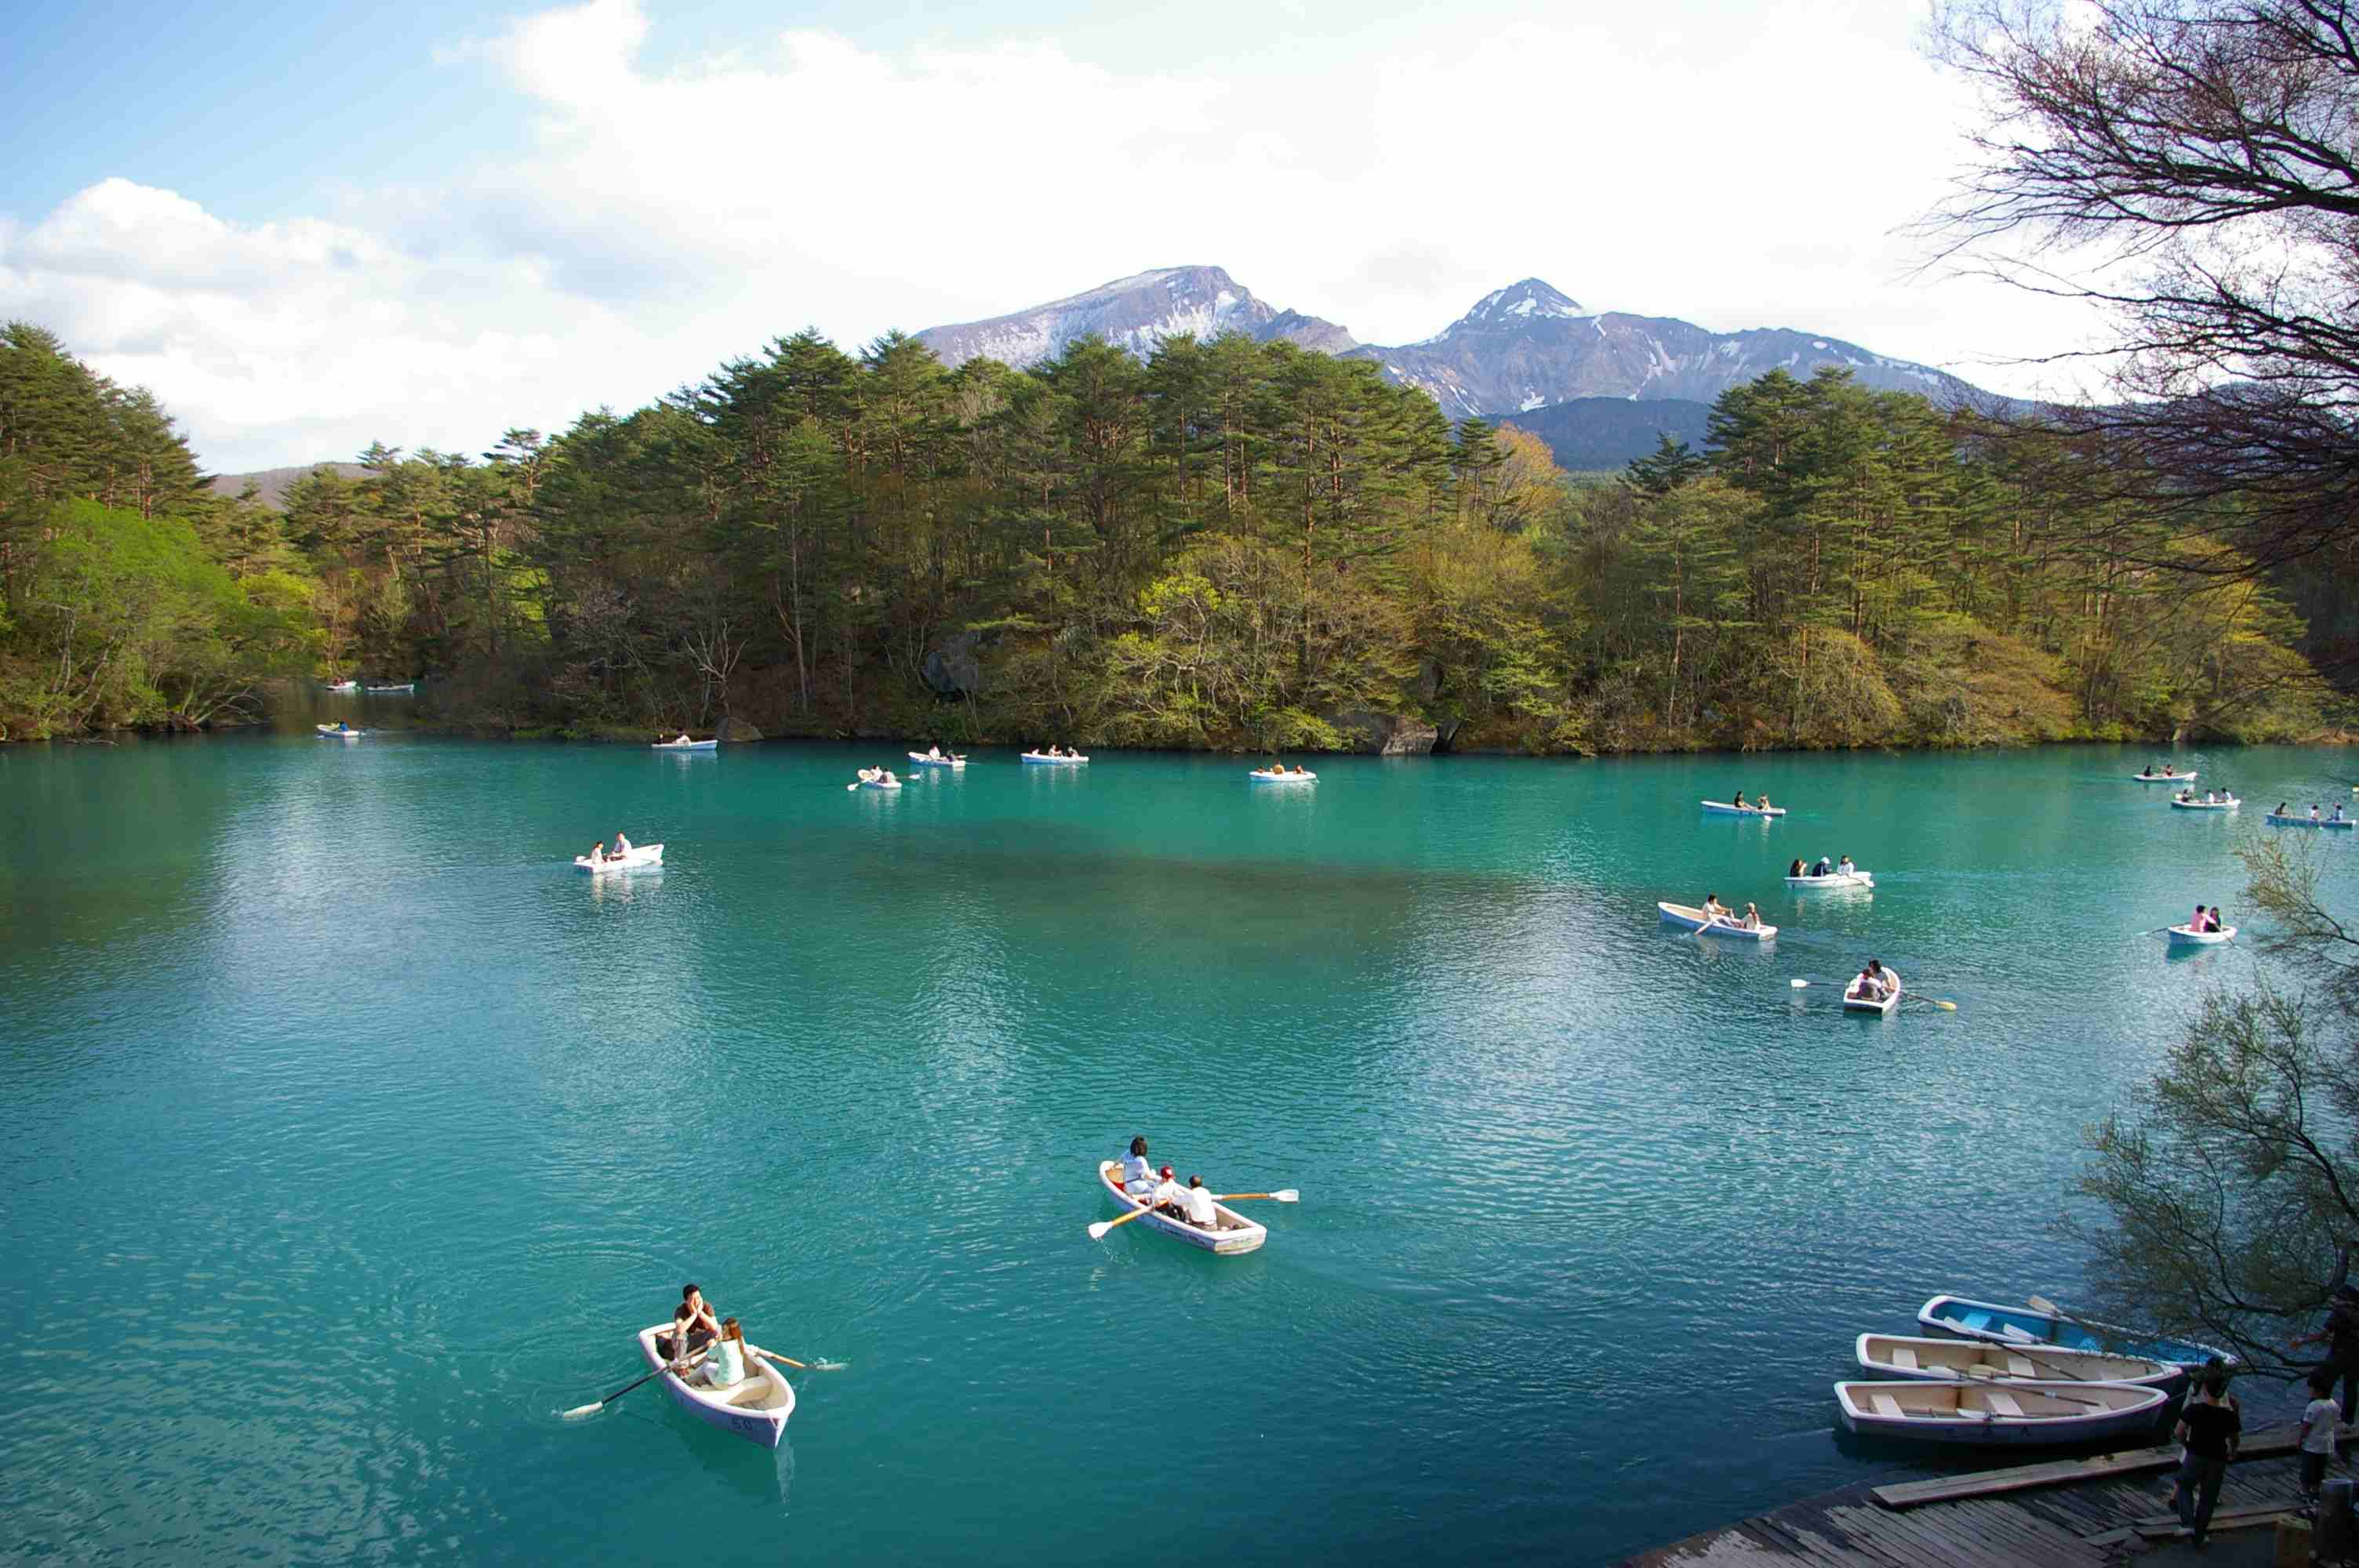 Goshiki-numa - A cluster of five volcano lakes